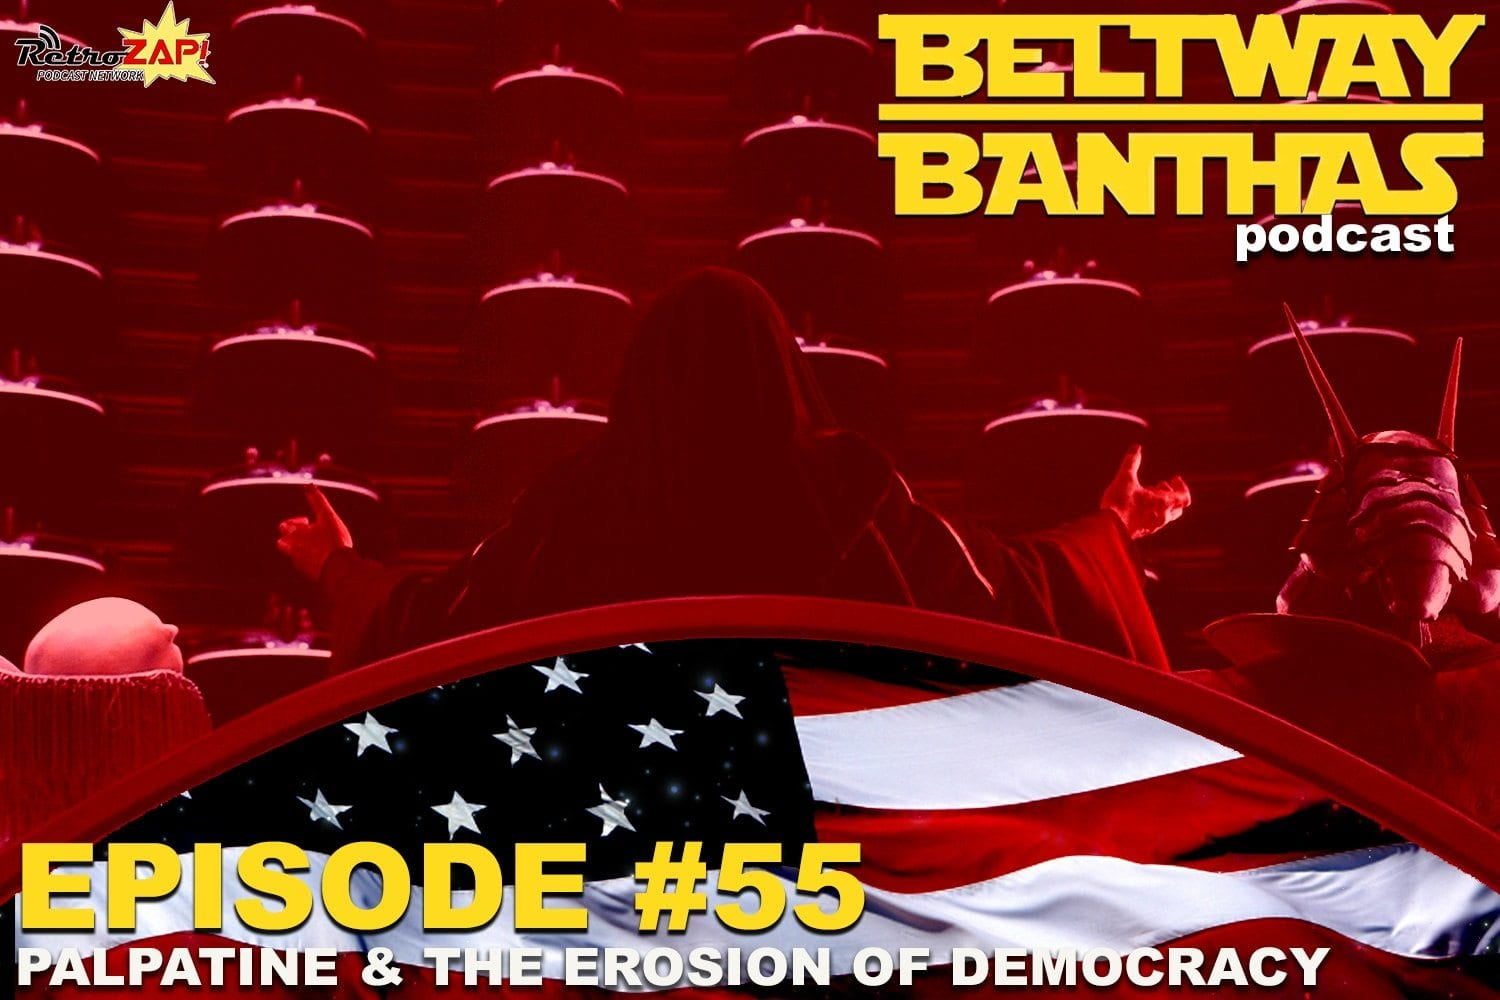 Beltway Banthas Episode #55: Palpatine & the Erosion of Democracy